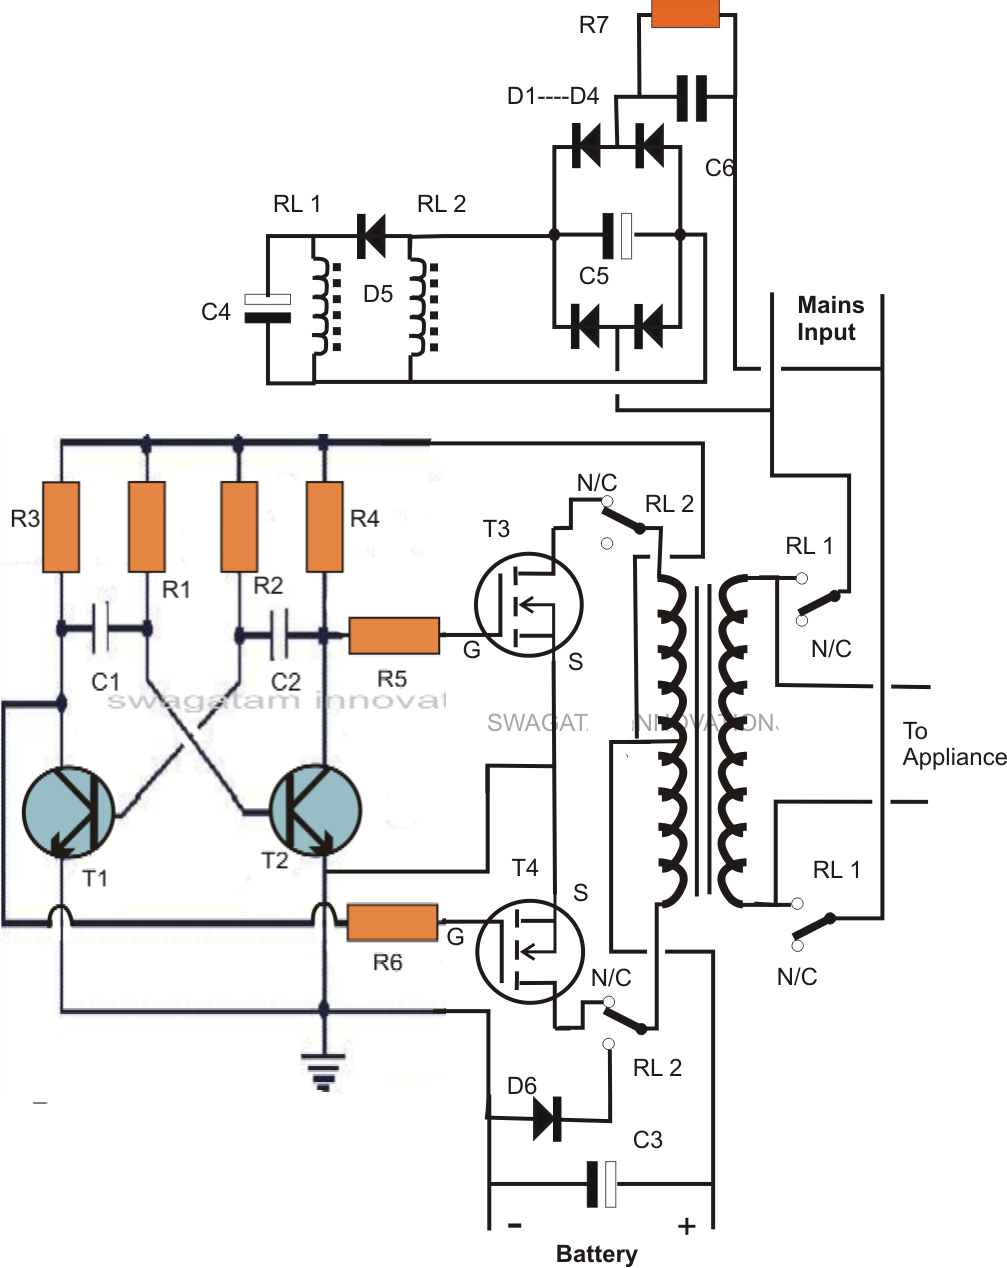 Multimeter Circuit Analog as well Solar Panel Circuit Diagram Schematic in addition Wiring Diagram 220v Capacitor Start Motor together with 222pv8 besides P 0996b43f80388ac2. on ups battery wiring diagram